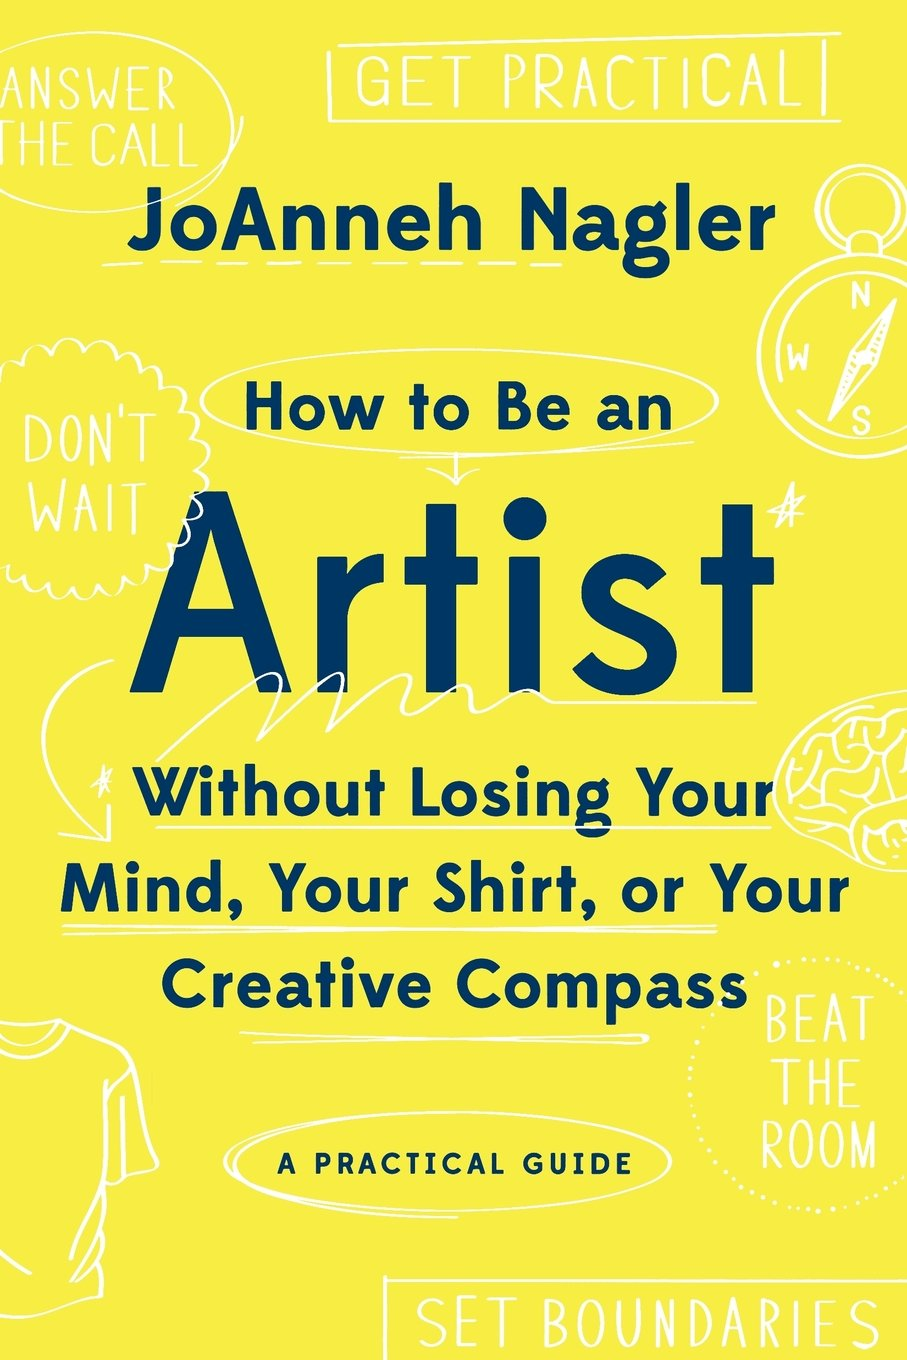 How to Be an Artist Without Losing Your Mind, Your Shirt, Or Your Creative Compass: A Practical Guide PDF